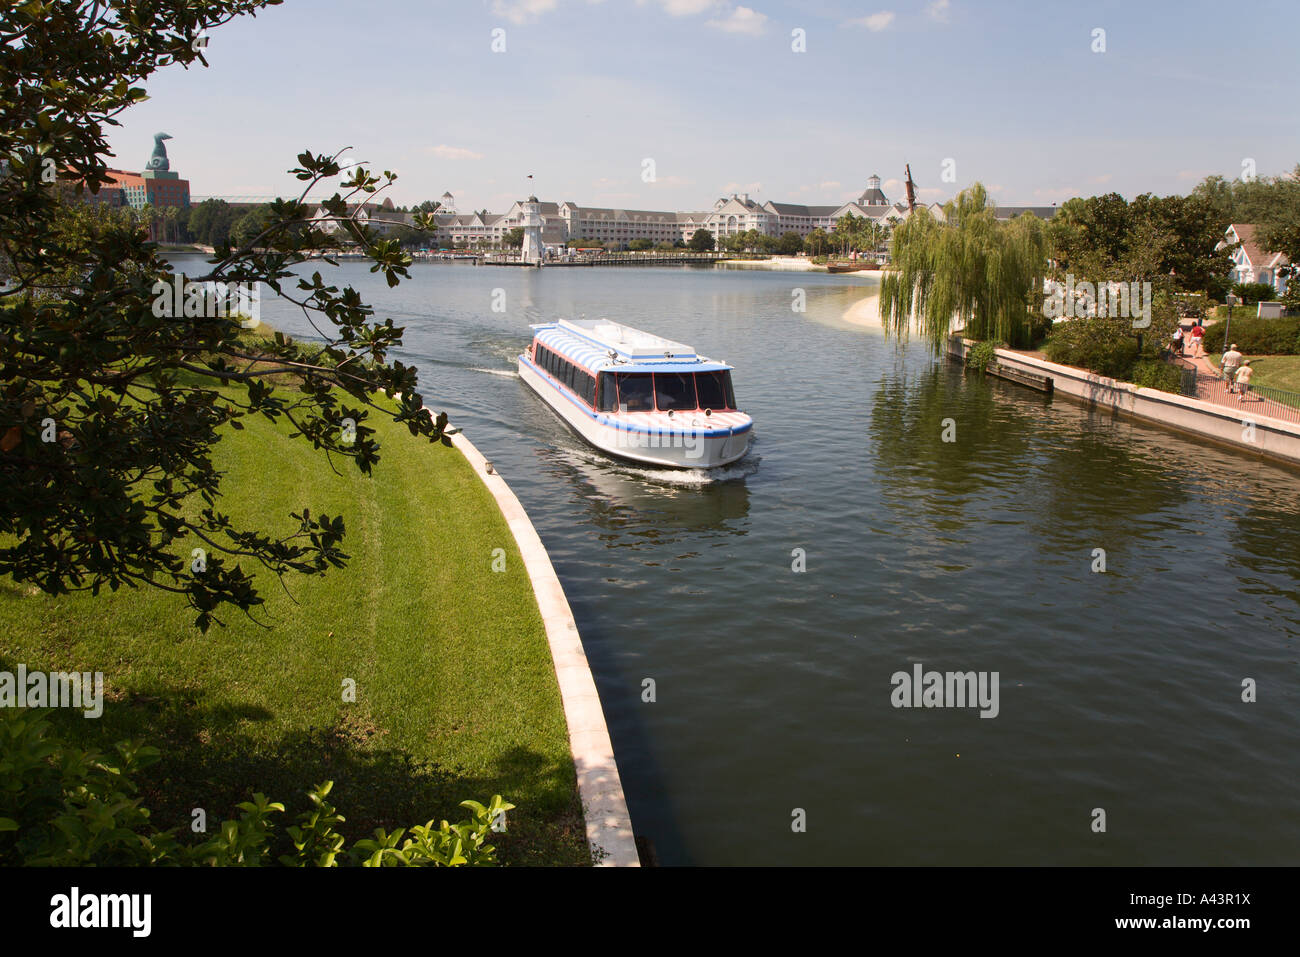 Water taxi carries park guests between parks and resorts at Walt Disney World in Florida, USA - Stock Image